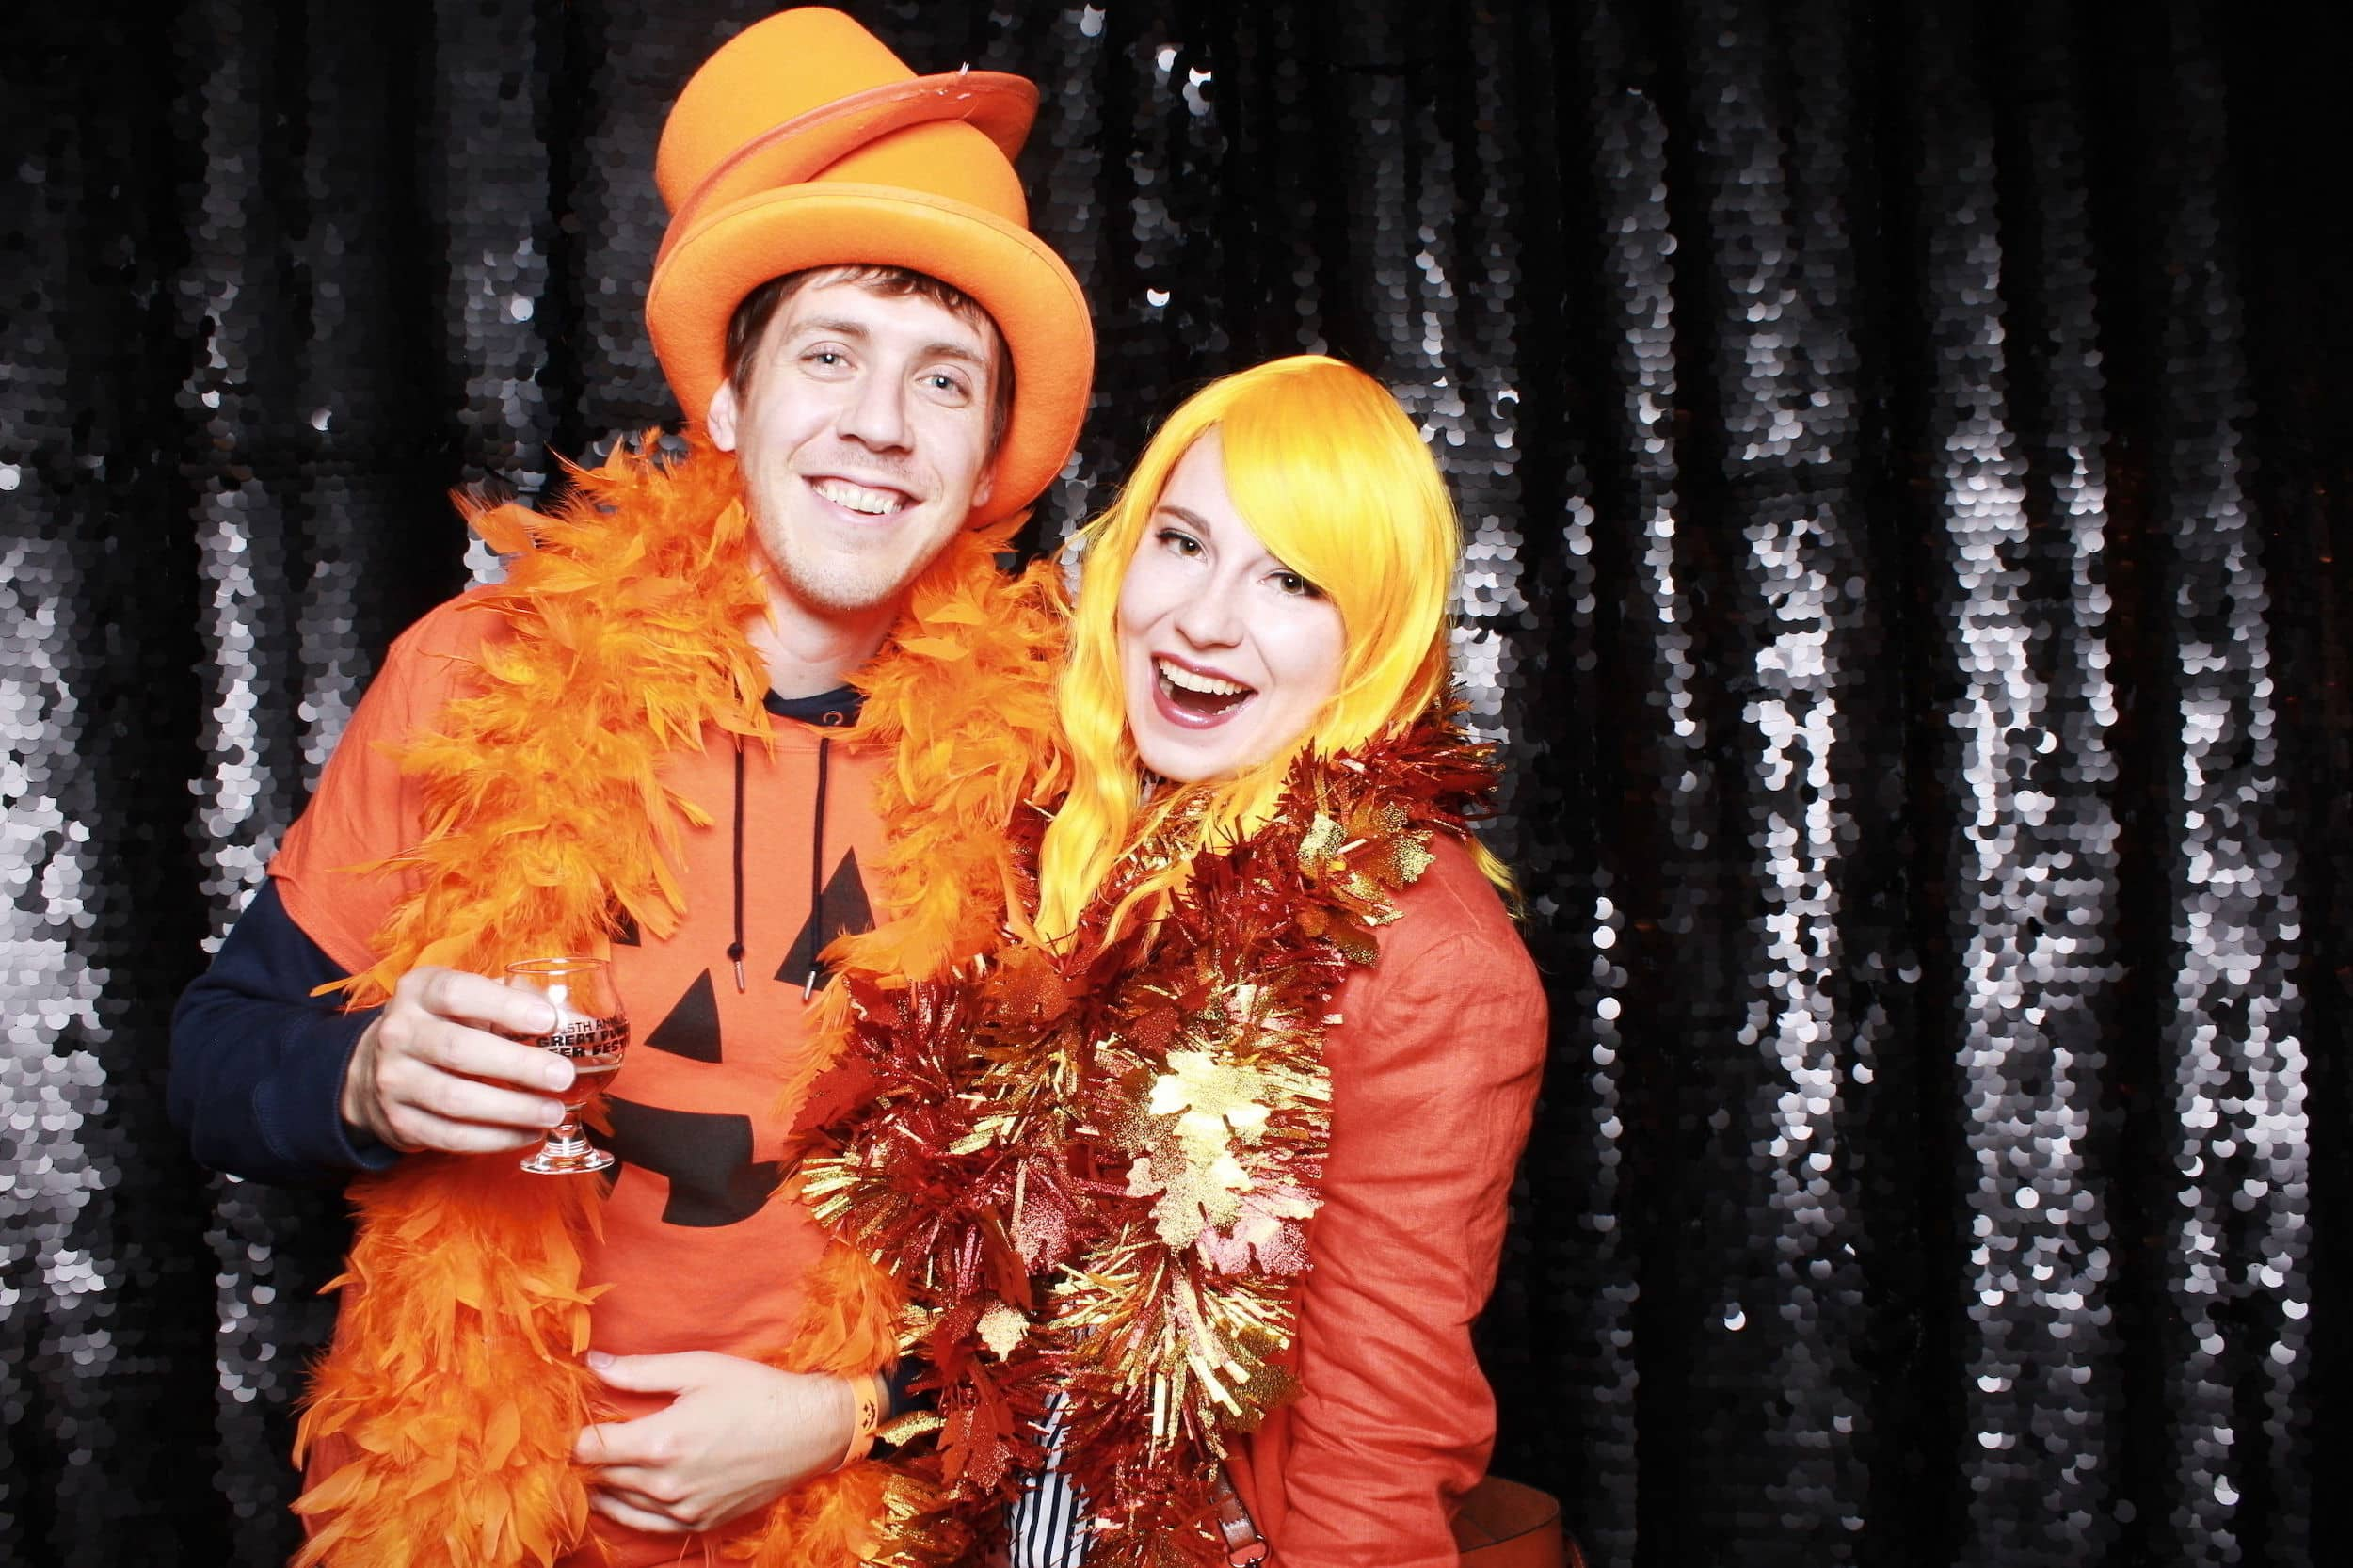 Halloween photo booth experience